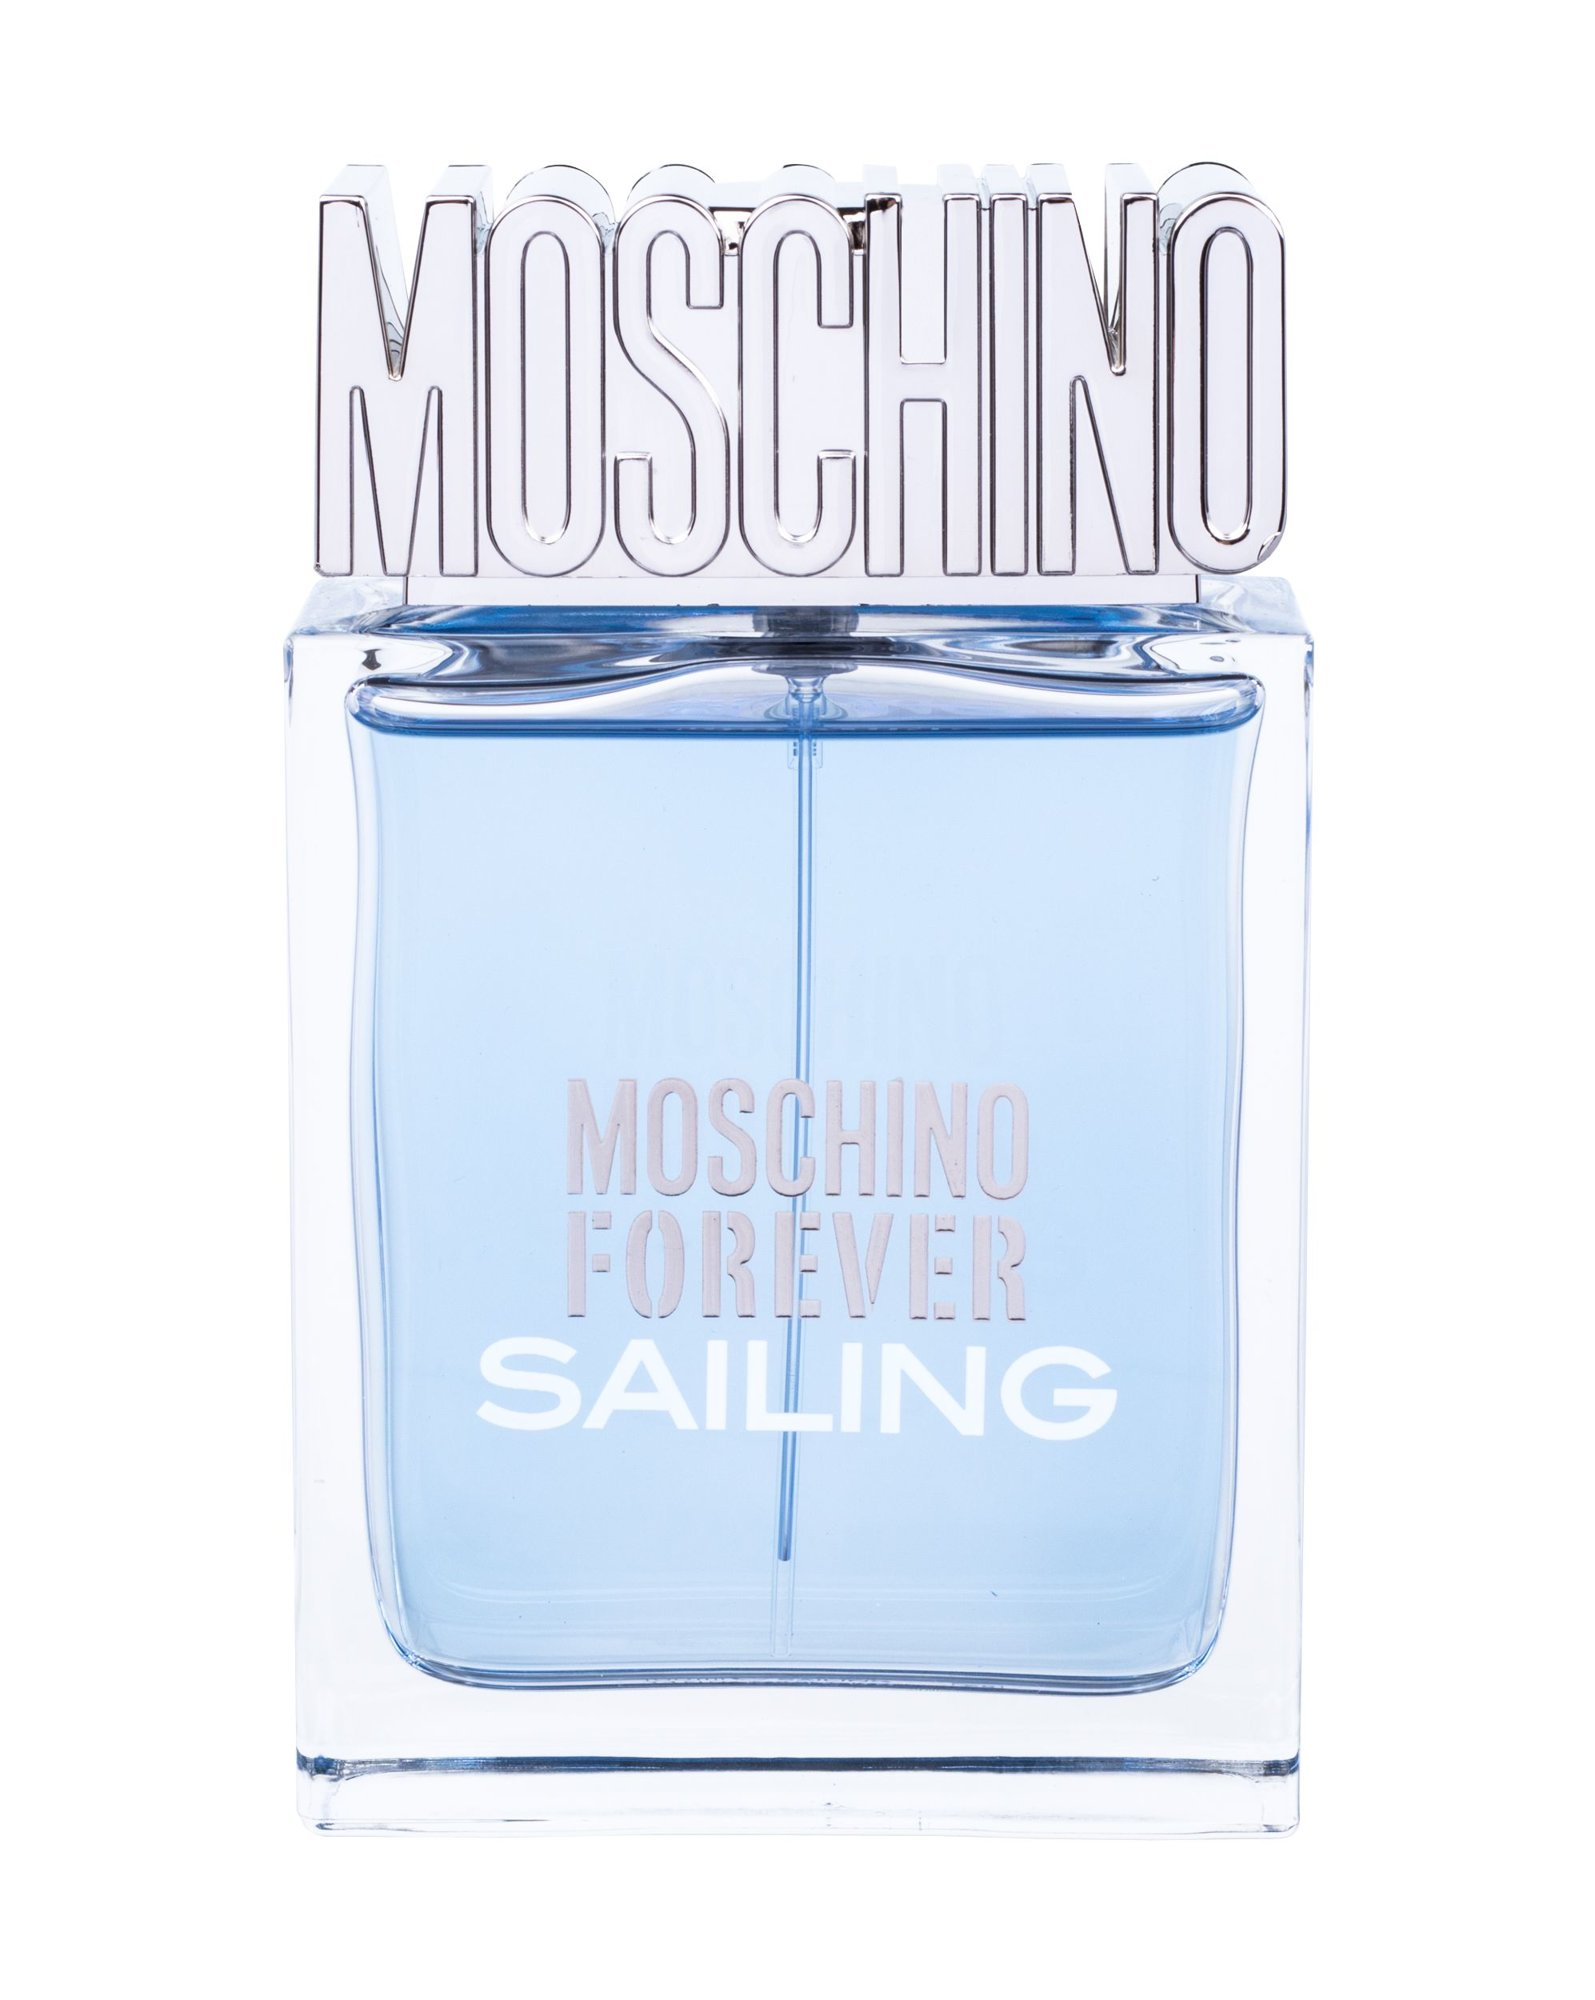 Moschino Forever Sailing For Men EDT 100ml